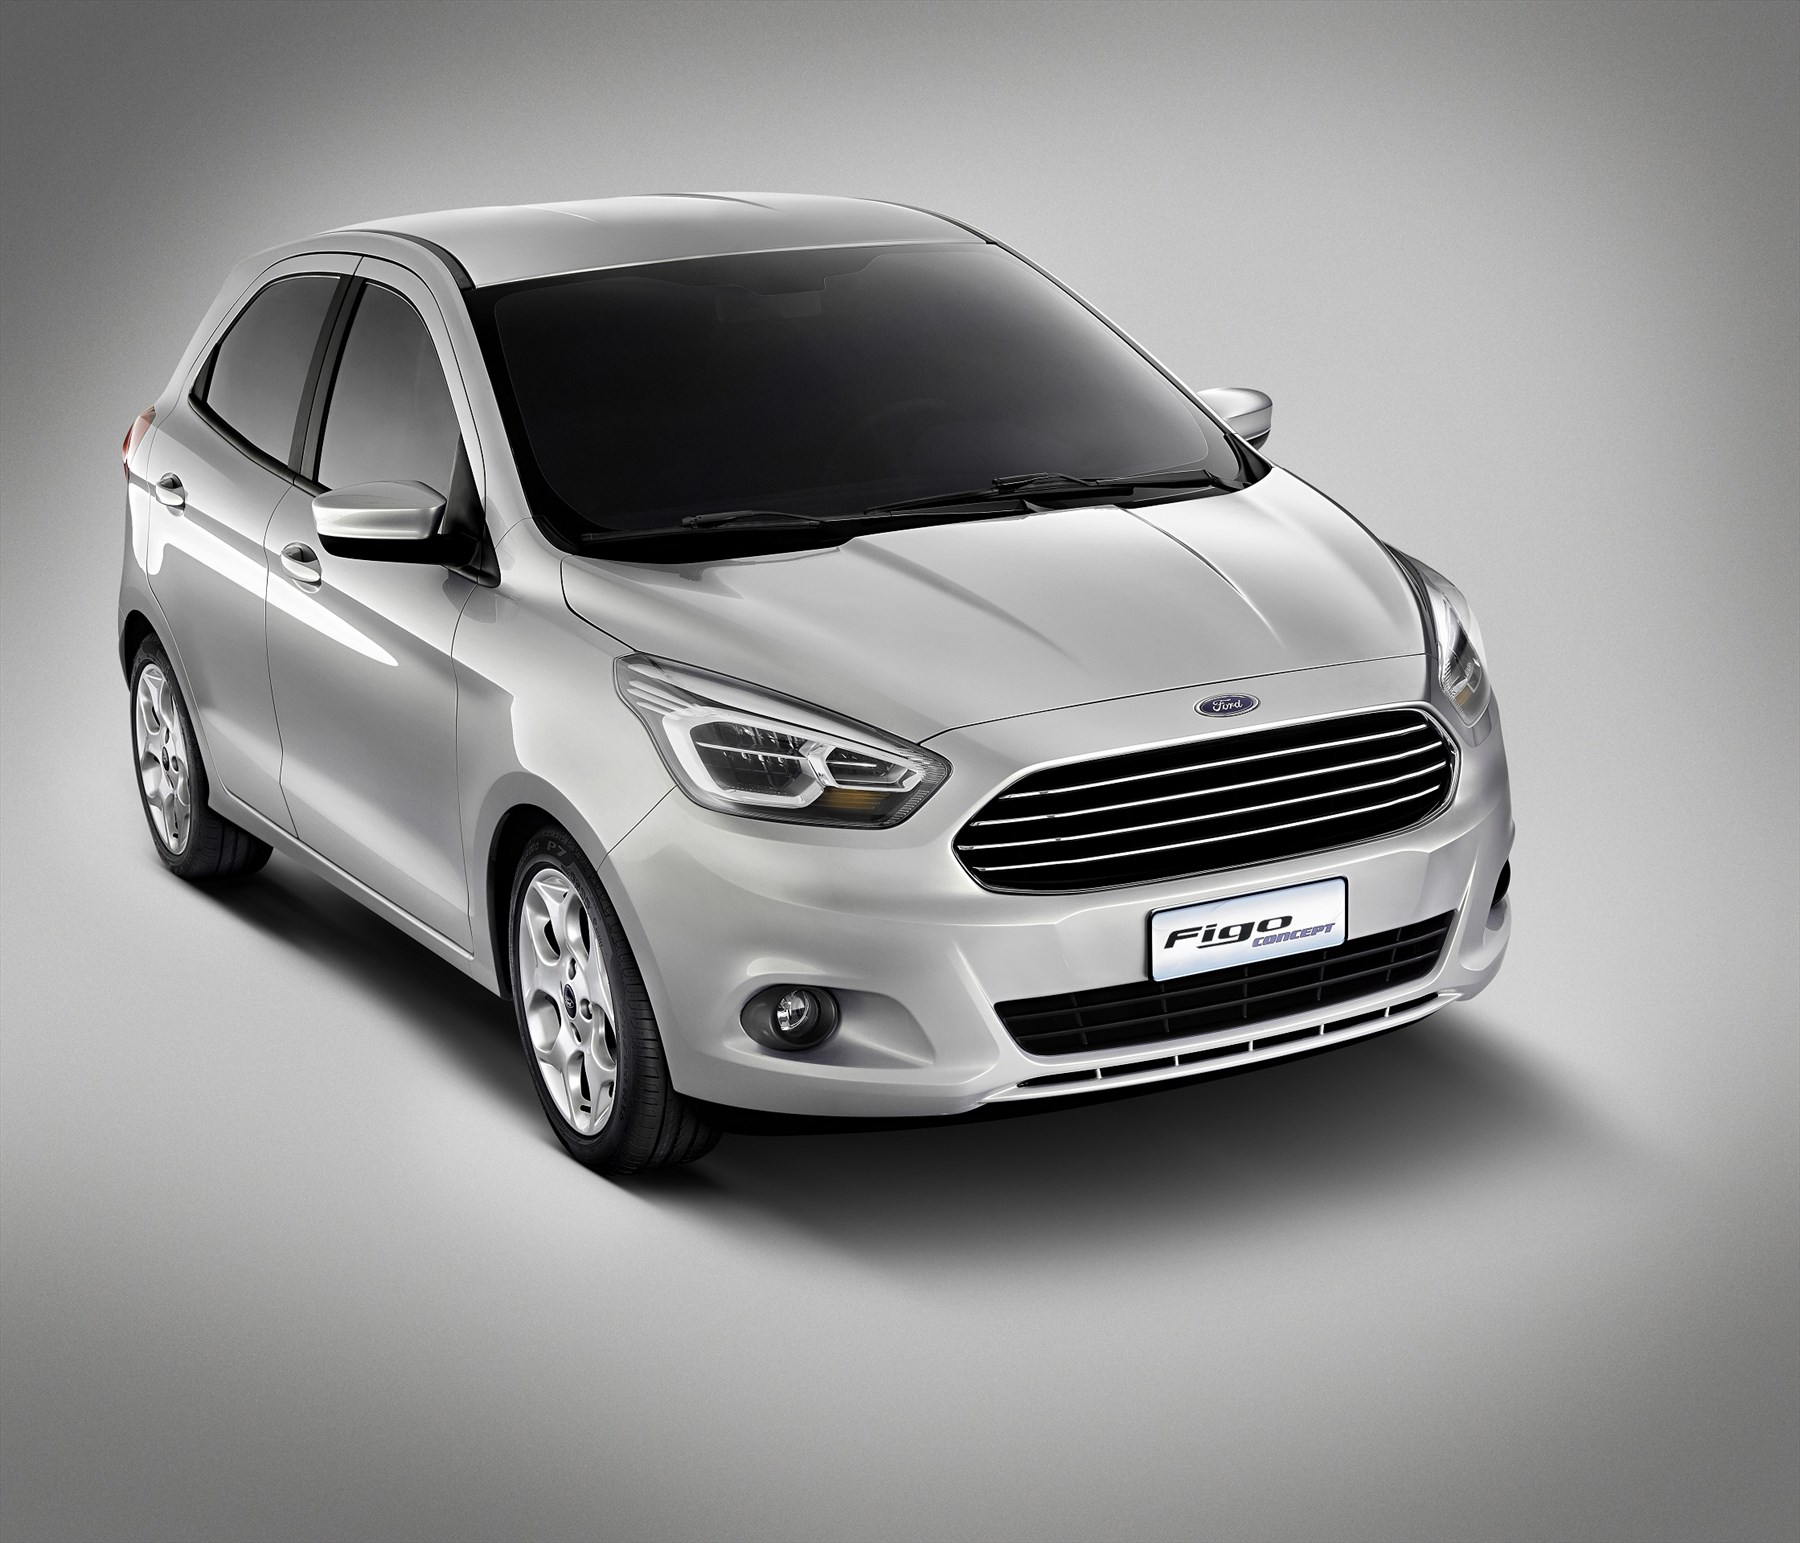 Ford Figo Concept Coming Soon: Latest News